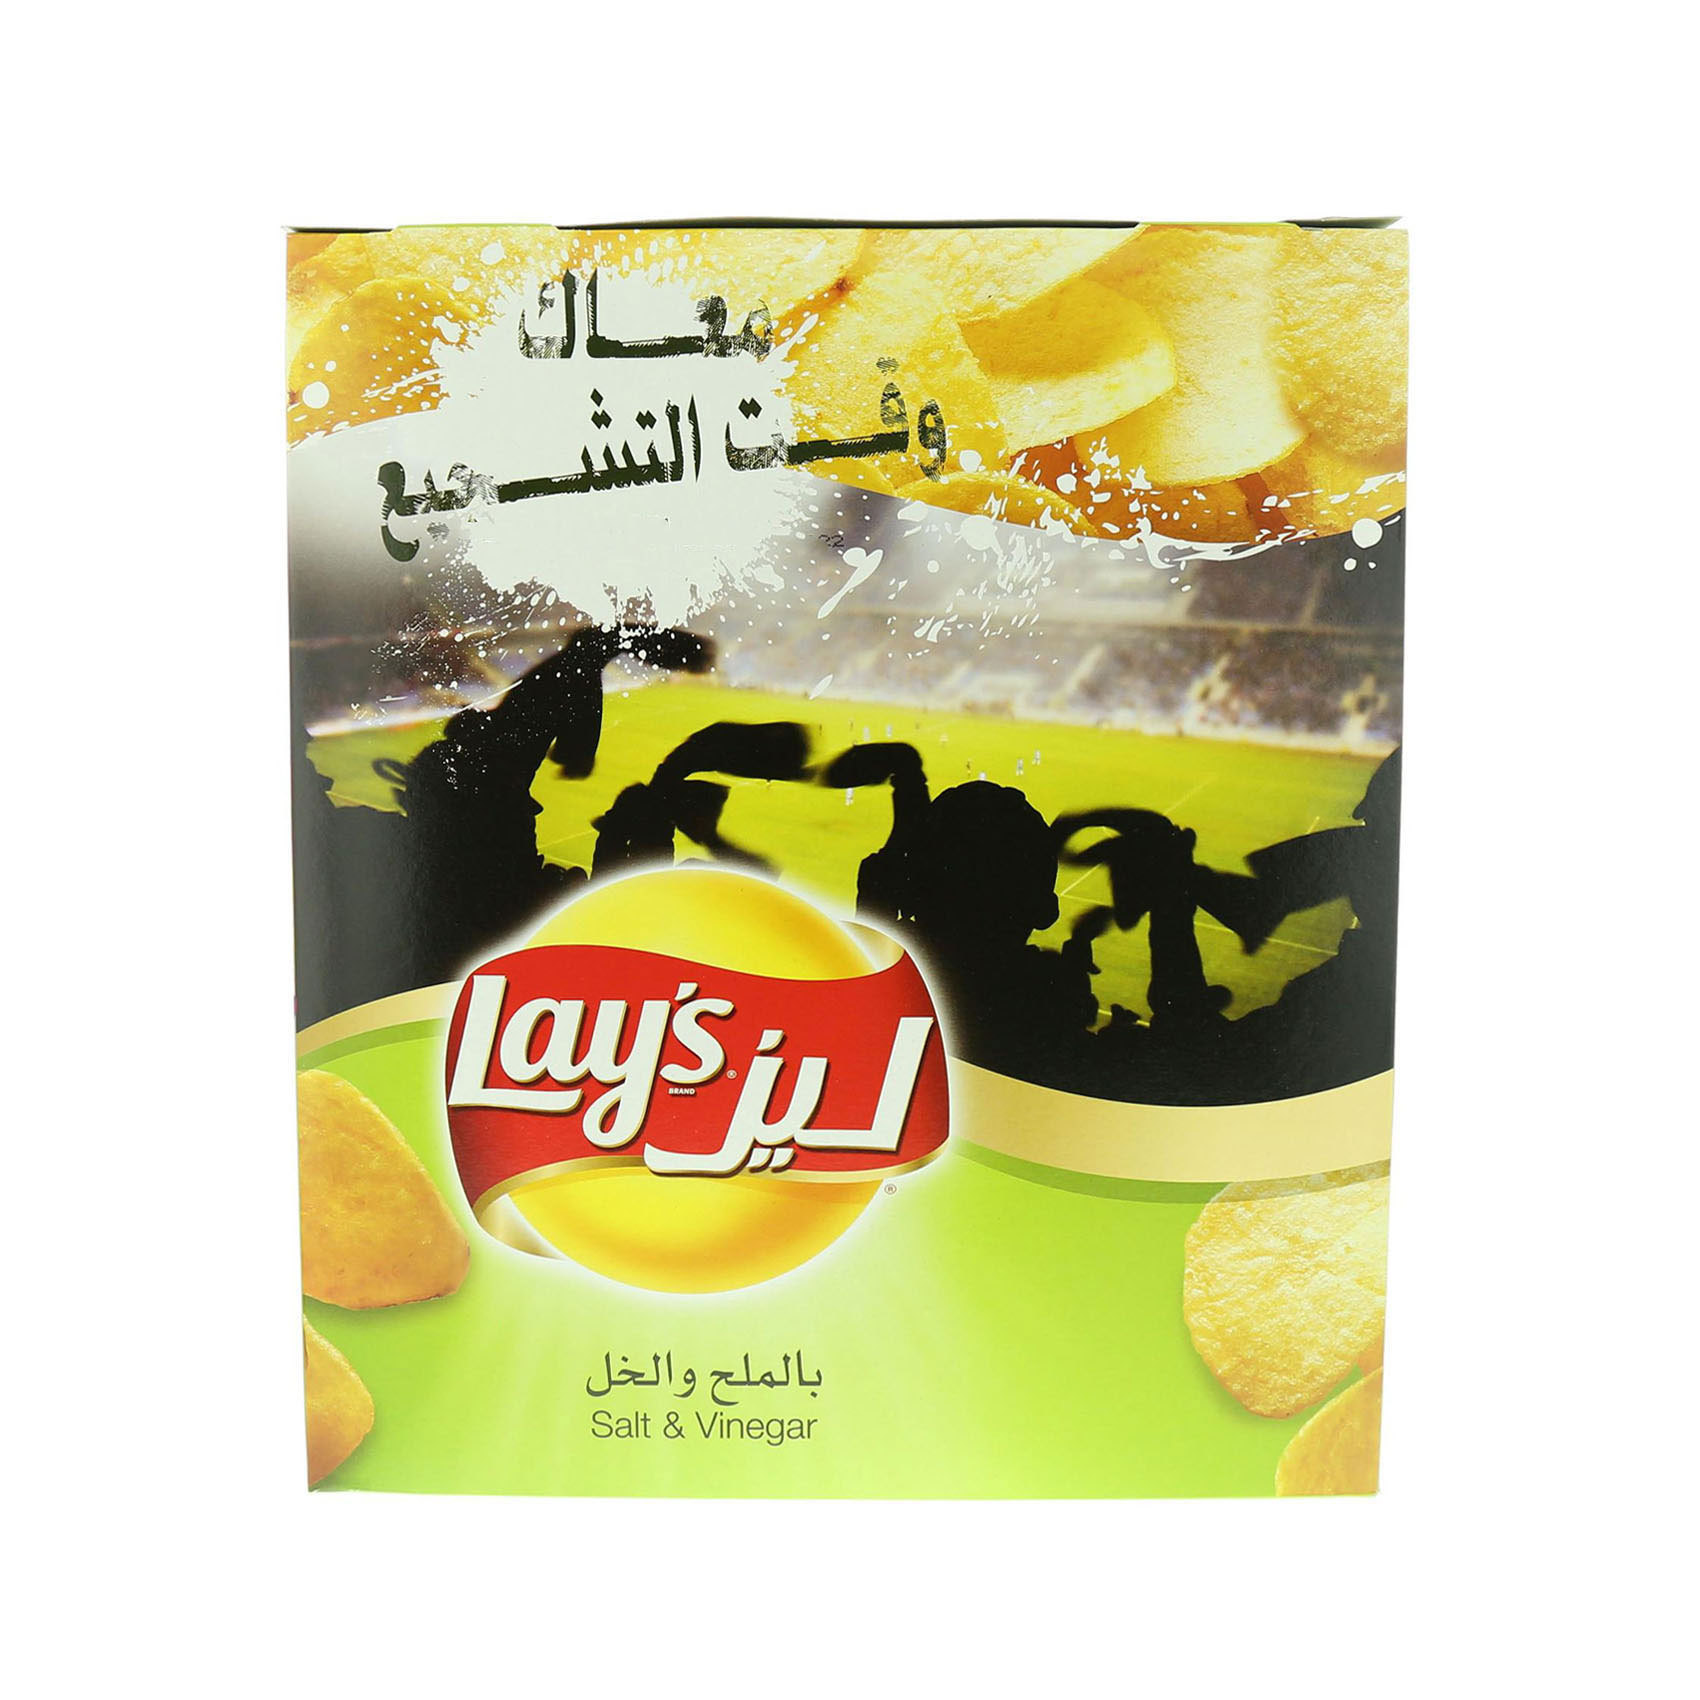 LAY'S CHIPS SALT & VINEGAR 23GX14